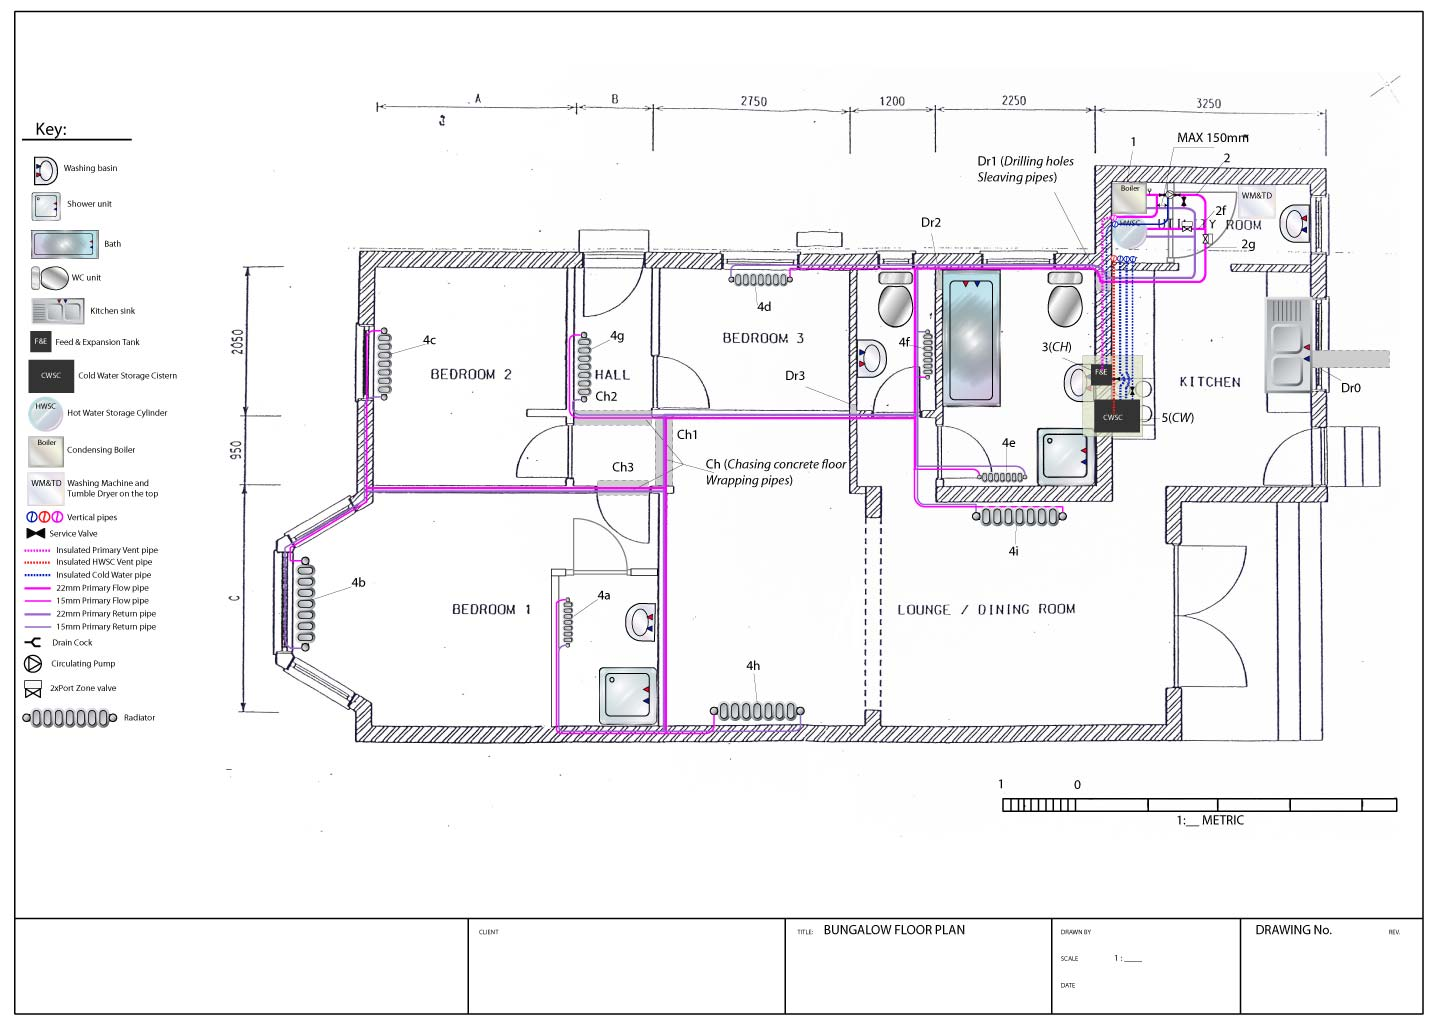 System planning and design bungalow project for plumbing for Blueprints and plans for hvac pdf